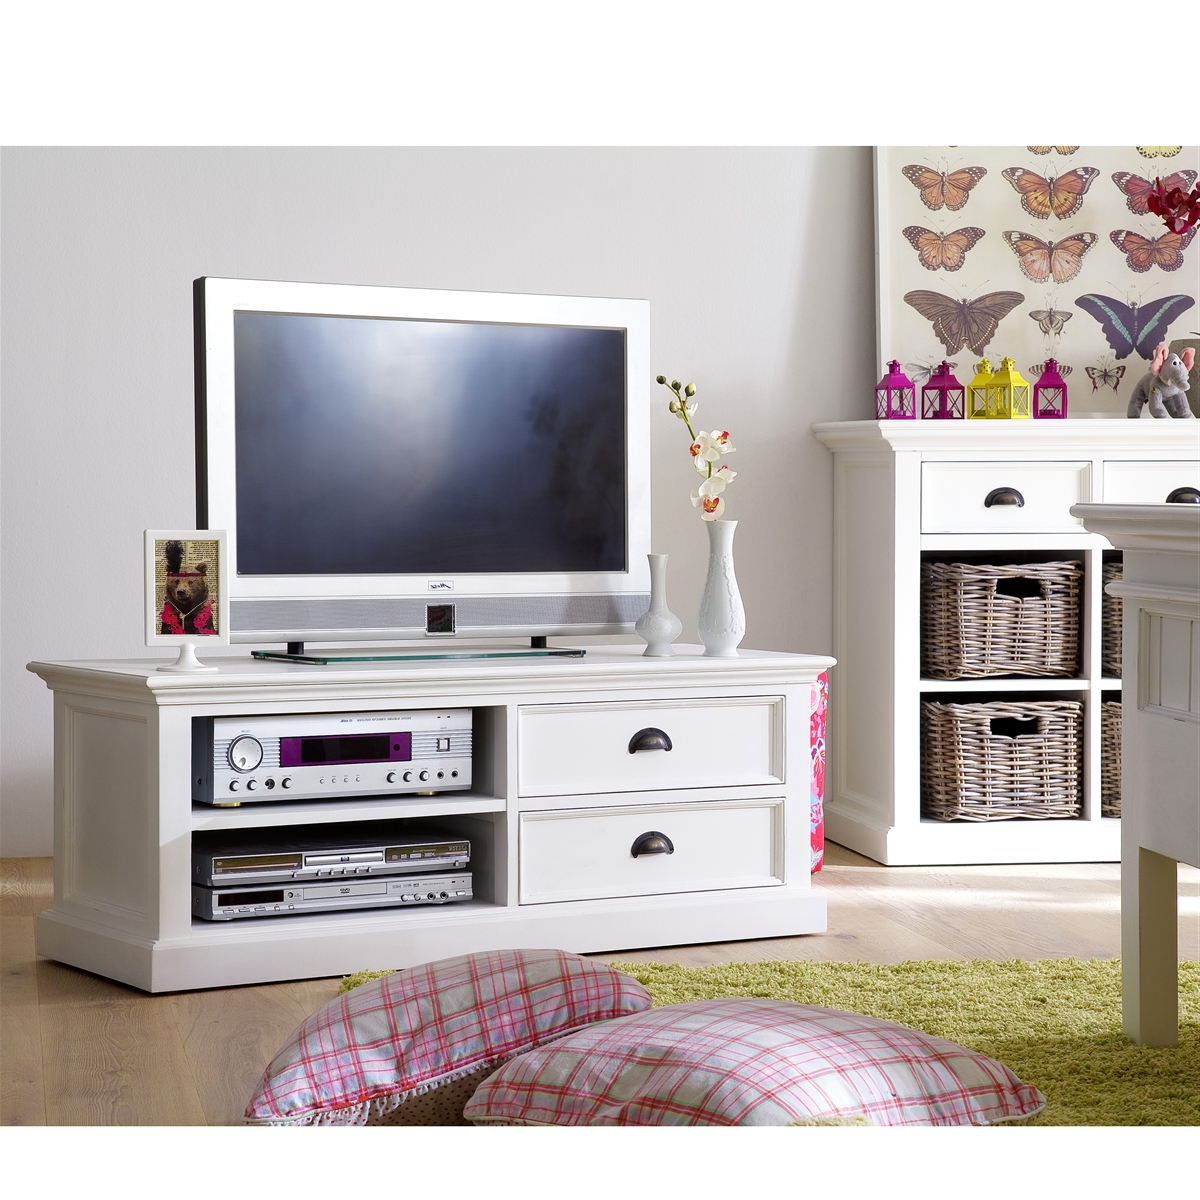 French Country Tv Stands Inside Popular Tv Stands: Inspiring White Distressed Tv Stand 2017 Design (View 5 of 20)